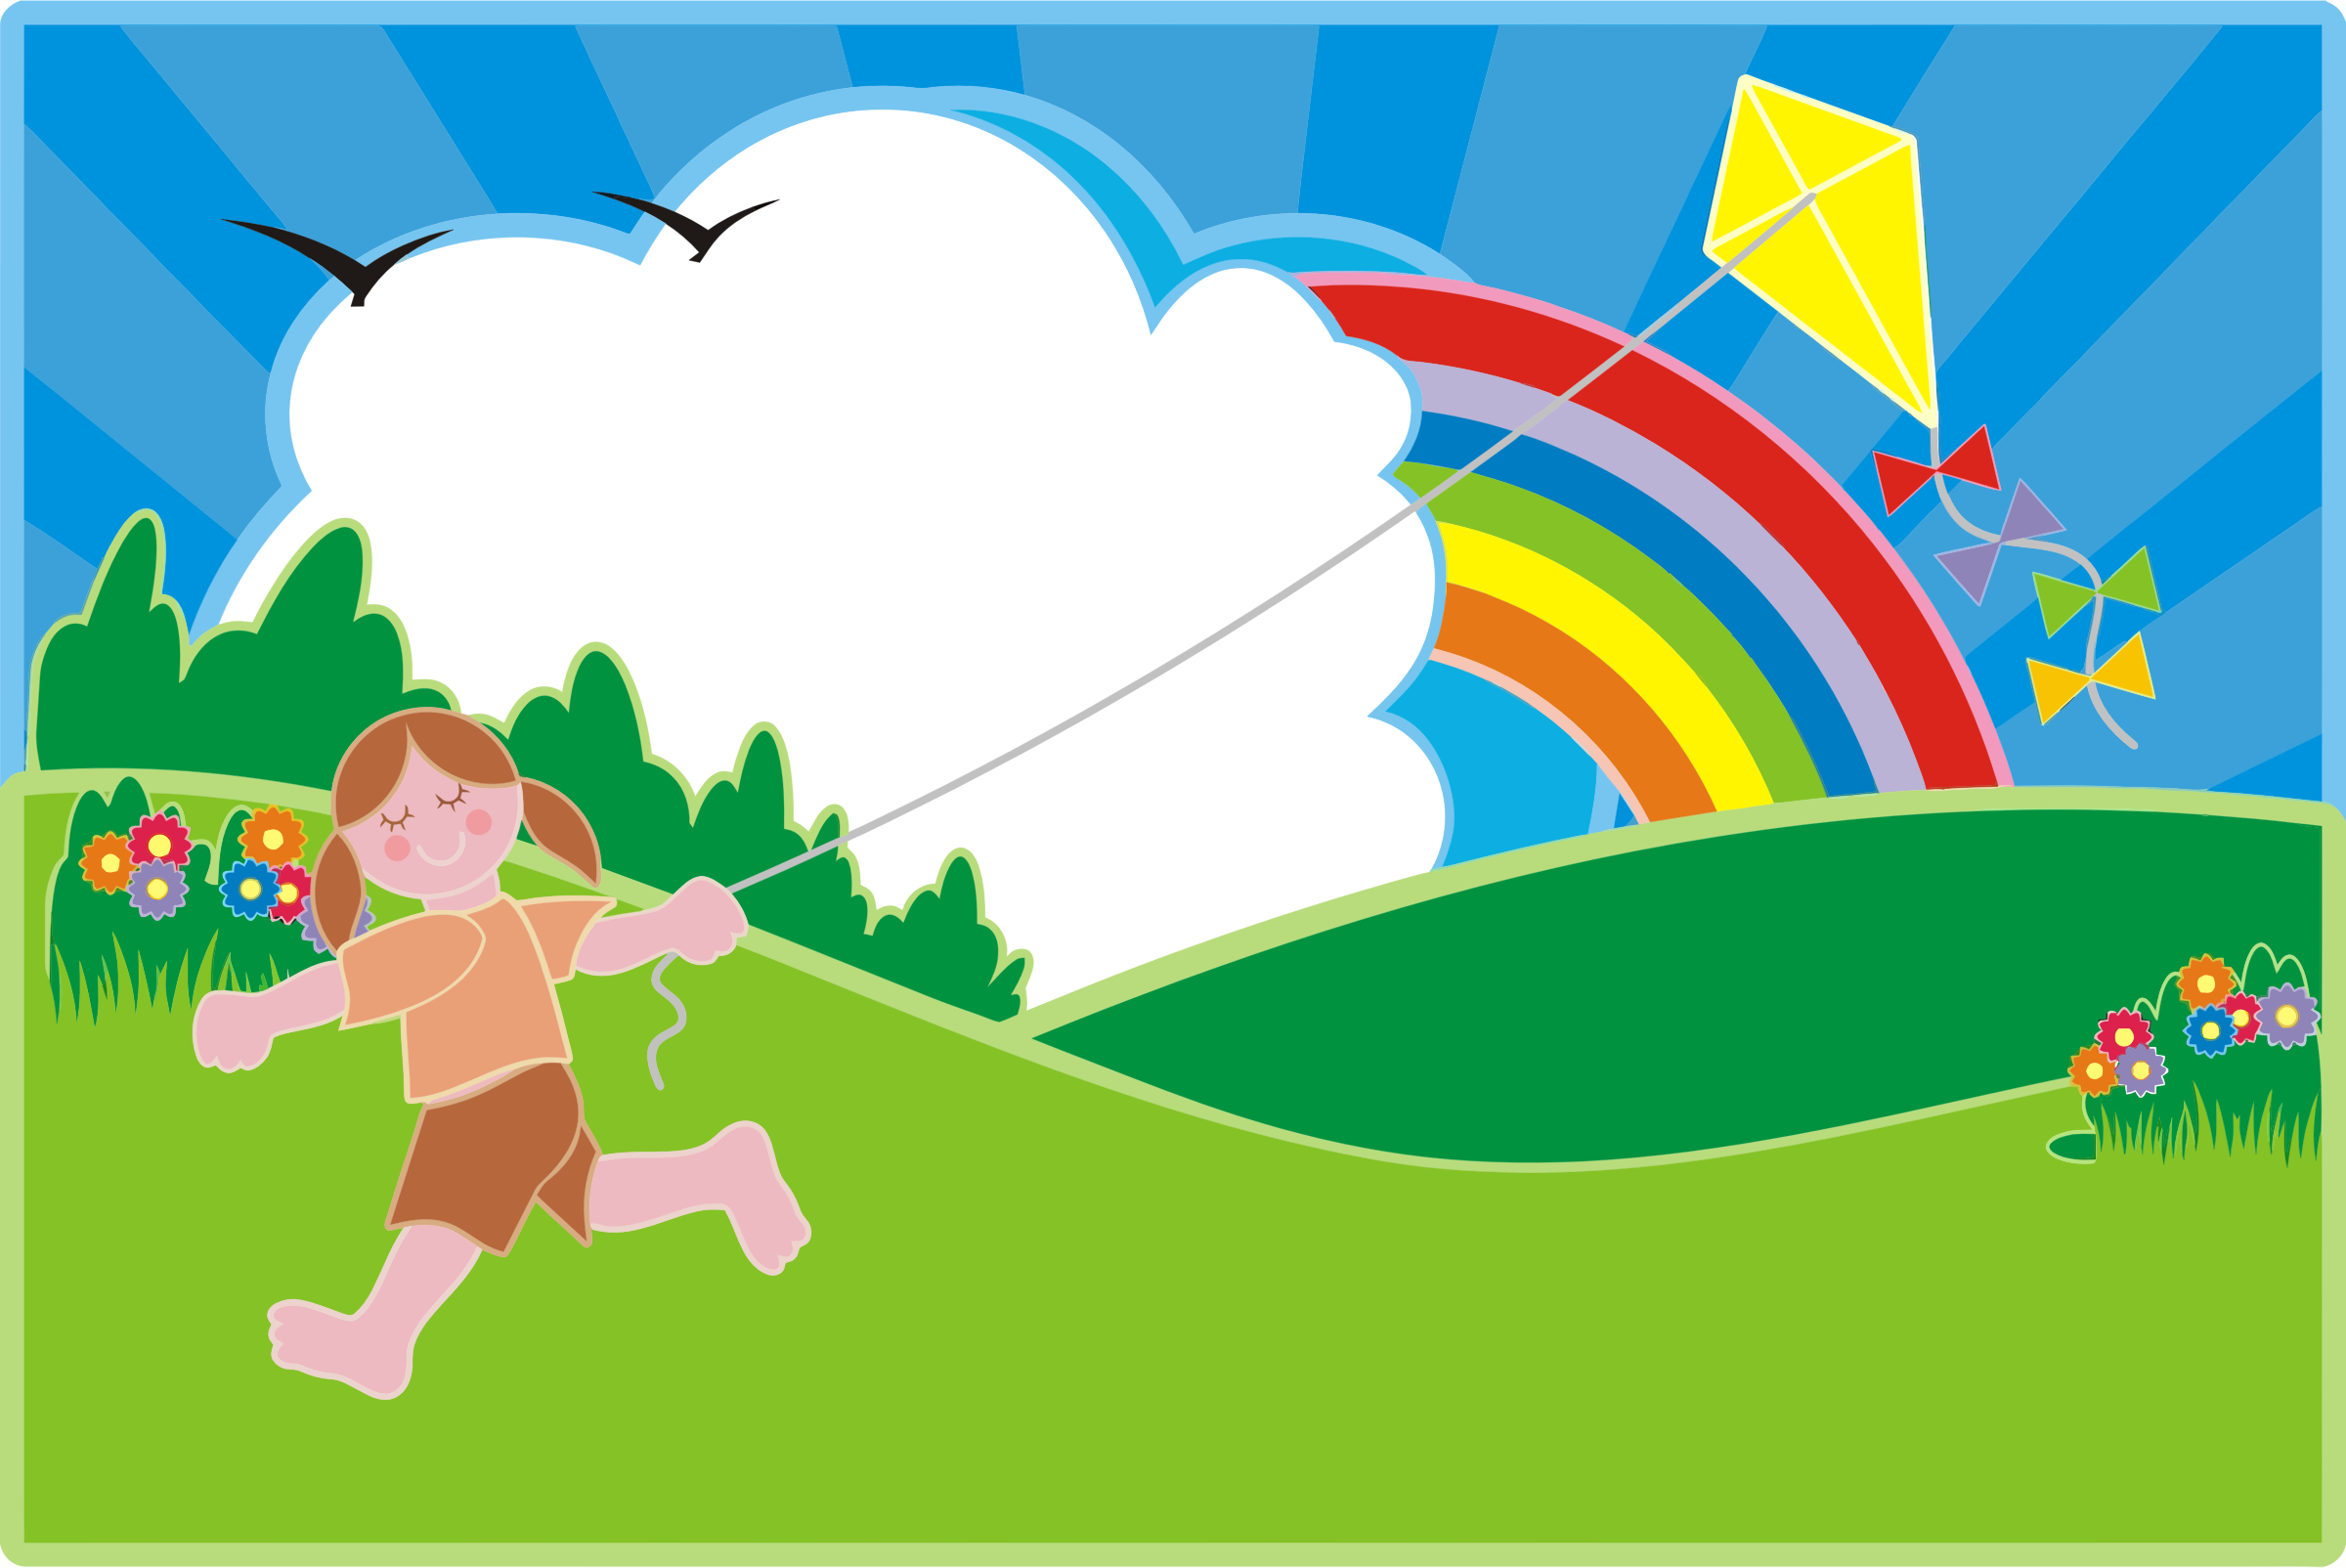 Girl Flying Kite In Colorful Landscape by GDJ